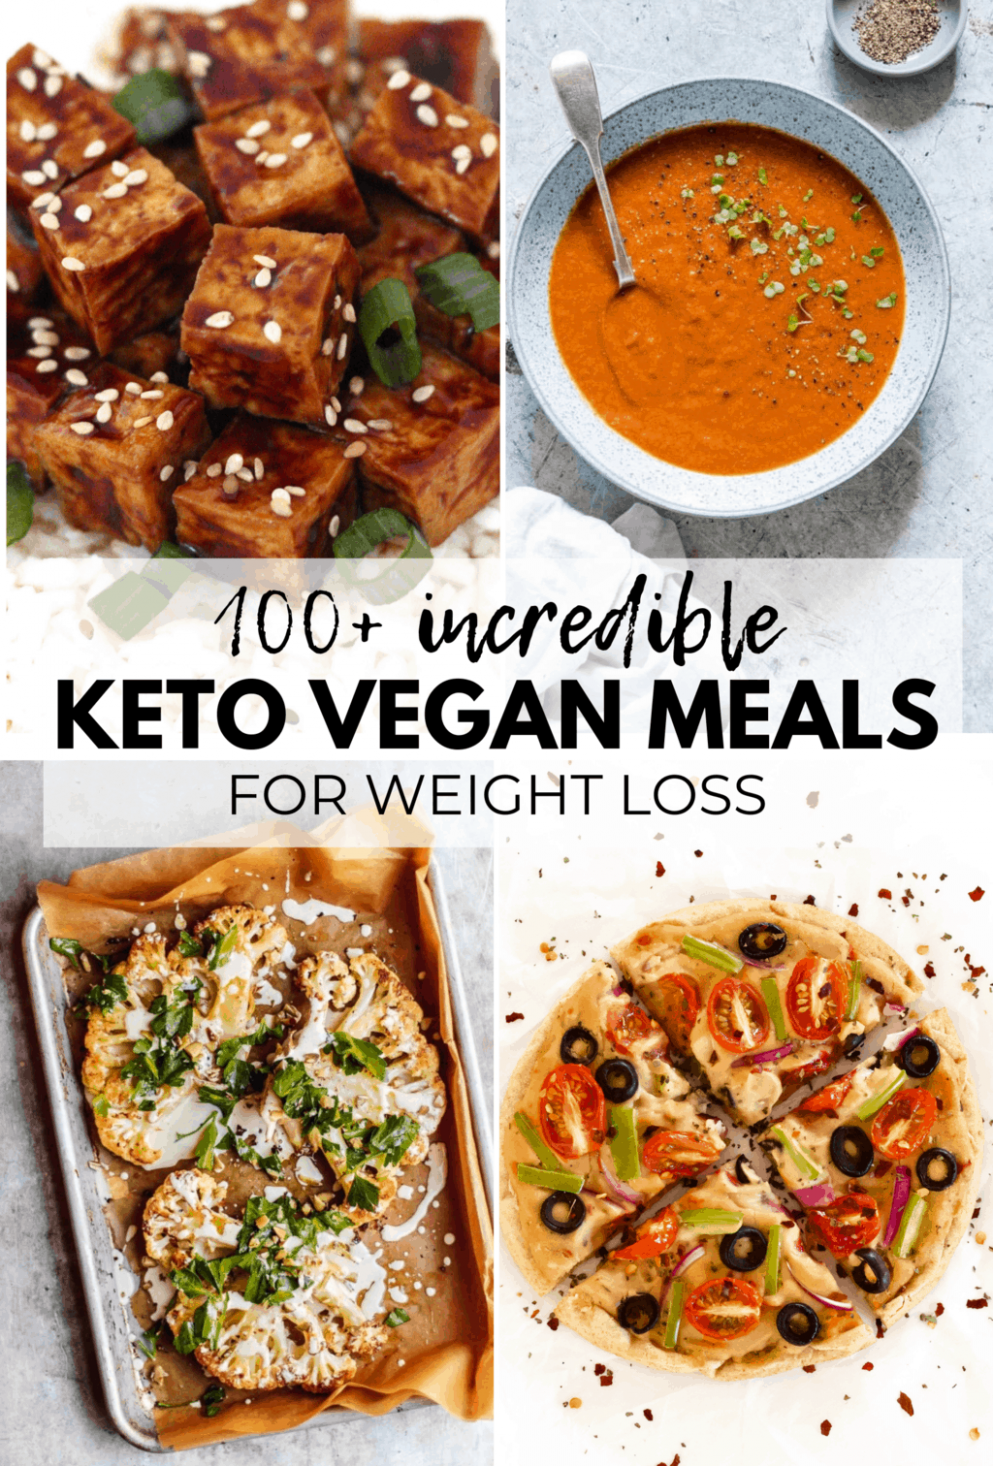 11+ AMAZING Keto Vegan Recipes For Weight Loss - Weight Loss Recipes Gluten Free